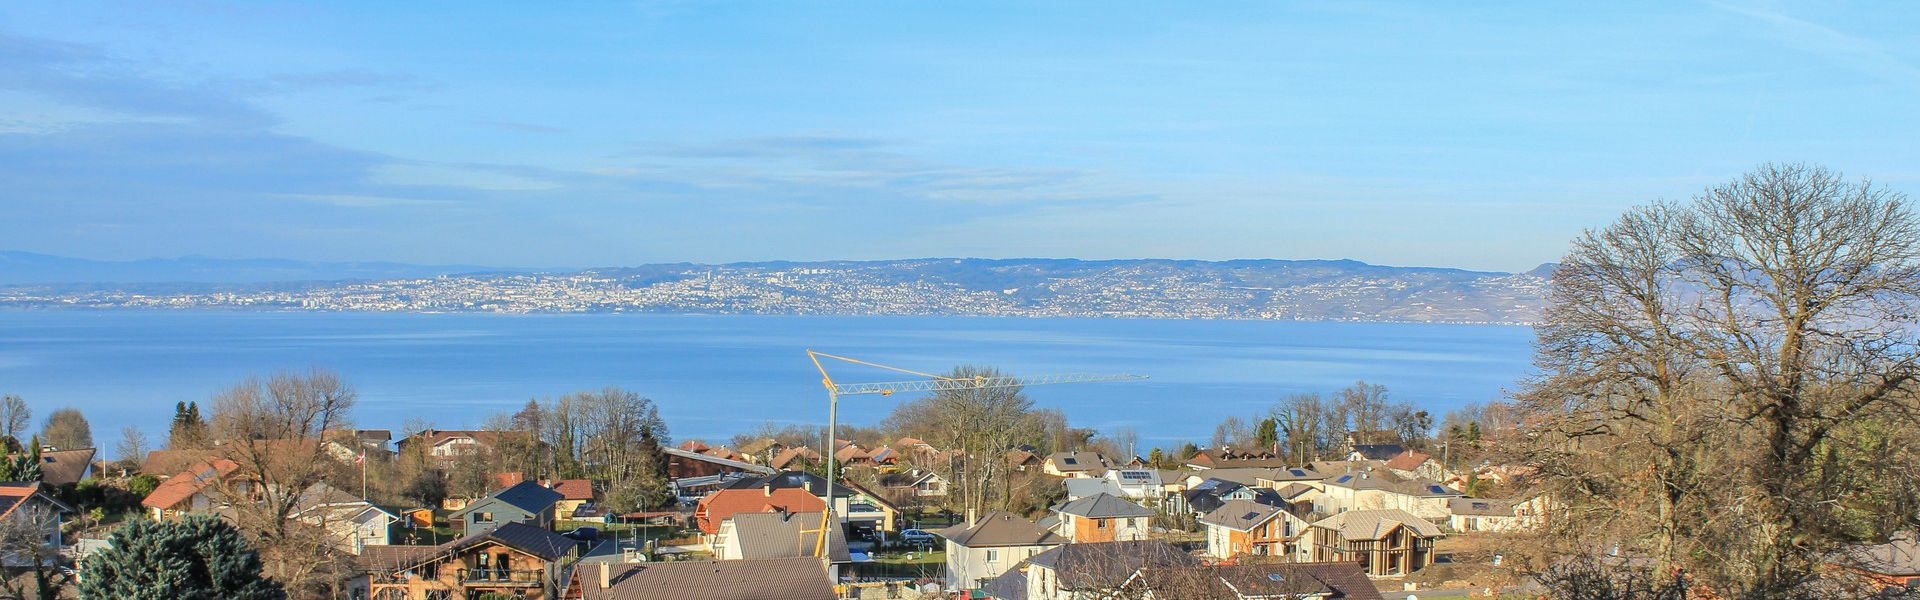 Maxilly-sur-Leman, a very lively town